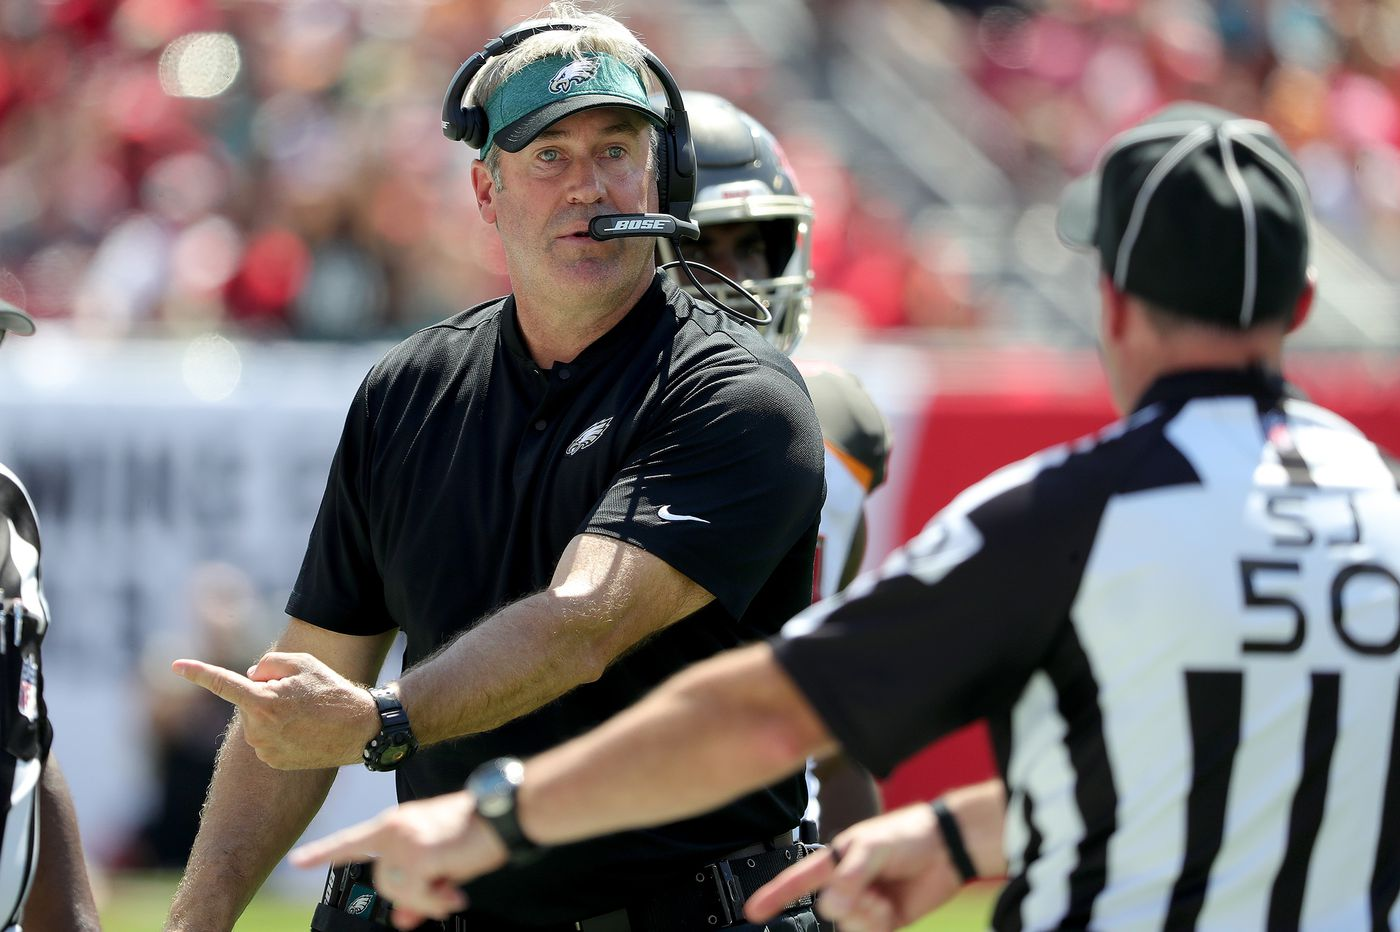 Eagles' Doug Pederson has no regrets about decision to go for it on fourth-and-4 in loss to Bucs